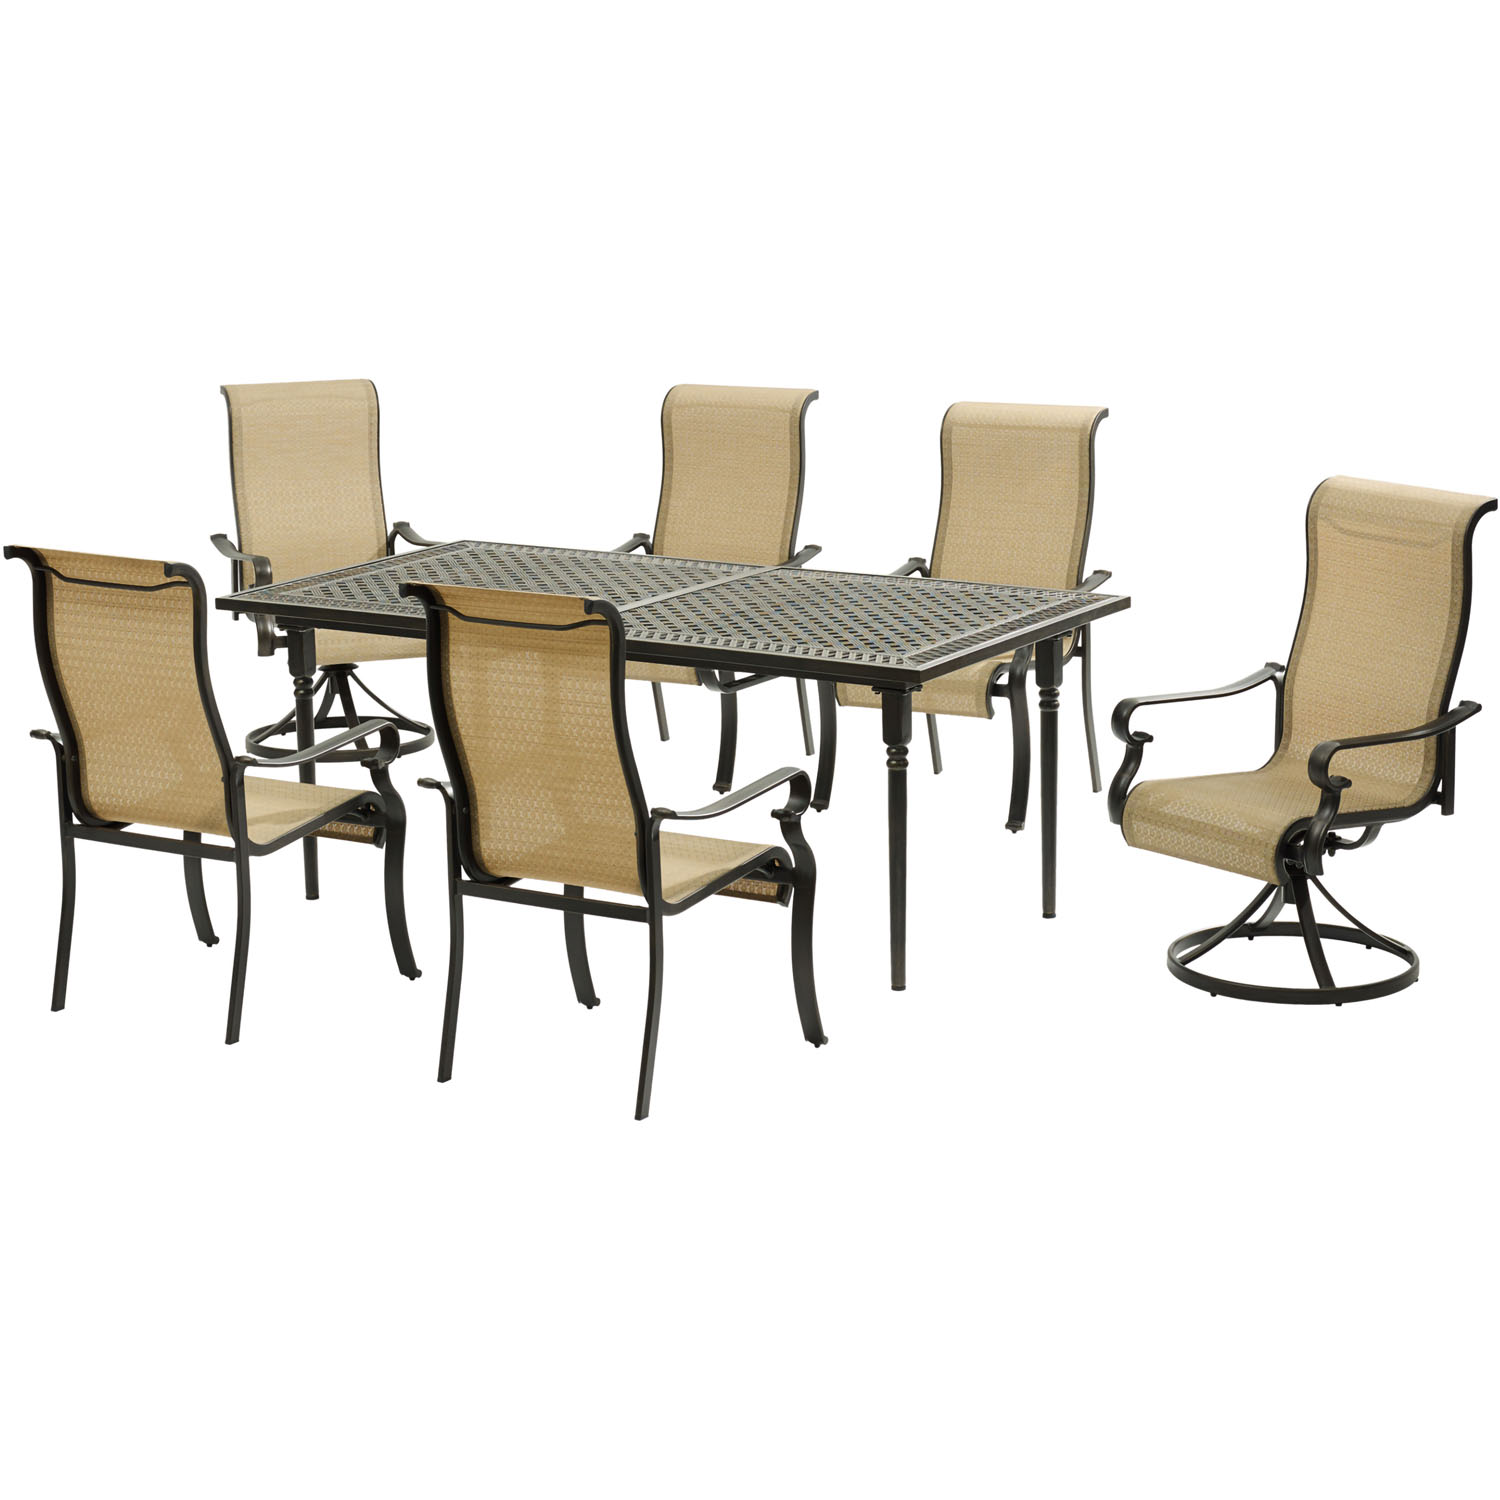 Hanover Brigantine 7-Piece Dining Set with an Expandable Cast-Top Dining Table, 2 Sling Swivel Rockers, and 4 Sling Dining Chairs